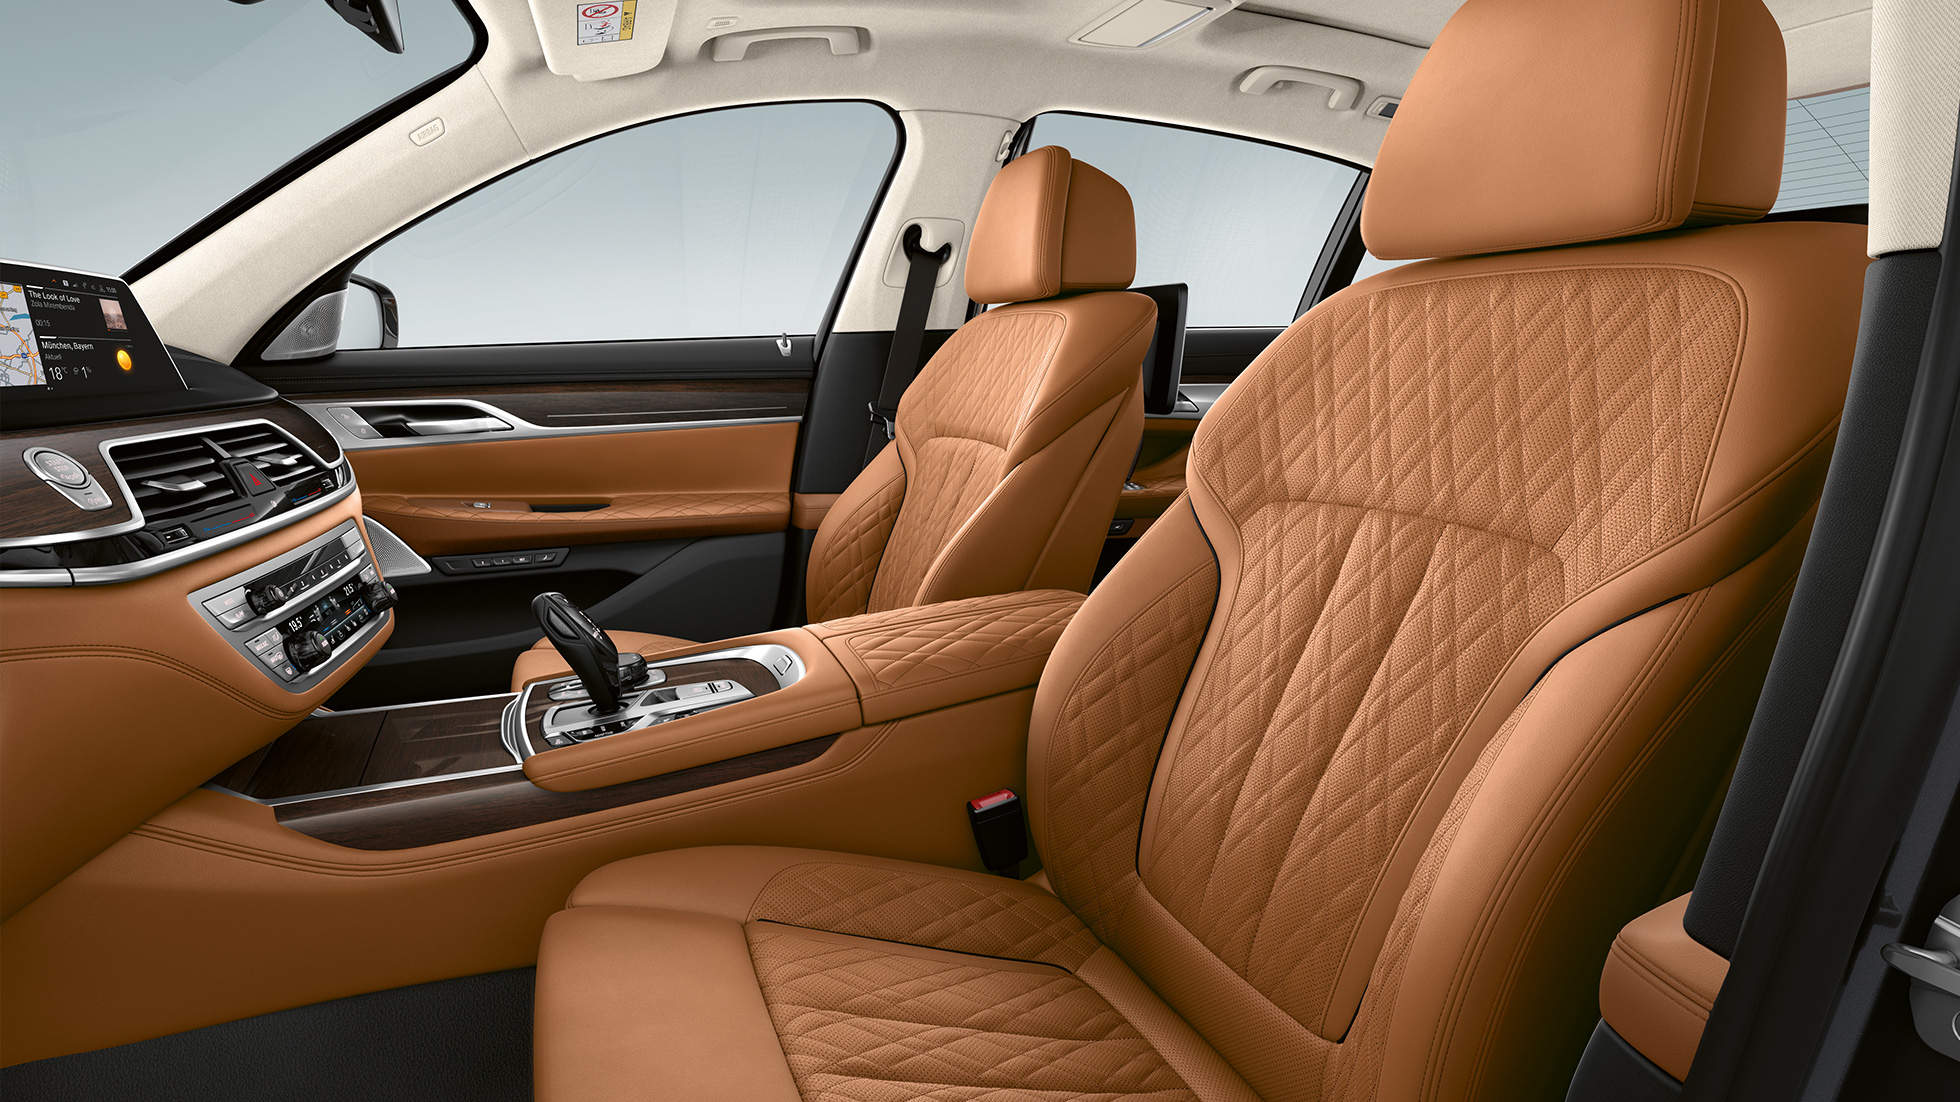 BMW 7 Series Sedan with Exterior Design Pure Excellence, Nappa leather upholstery